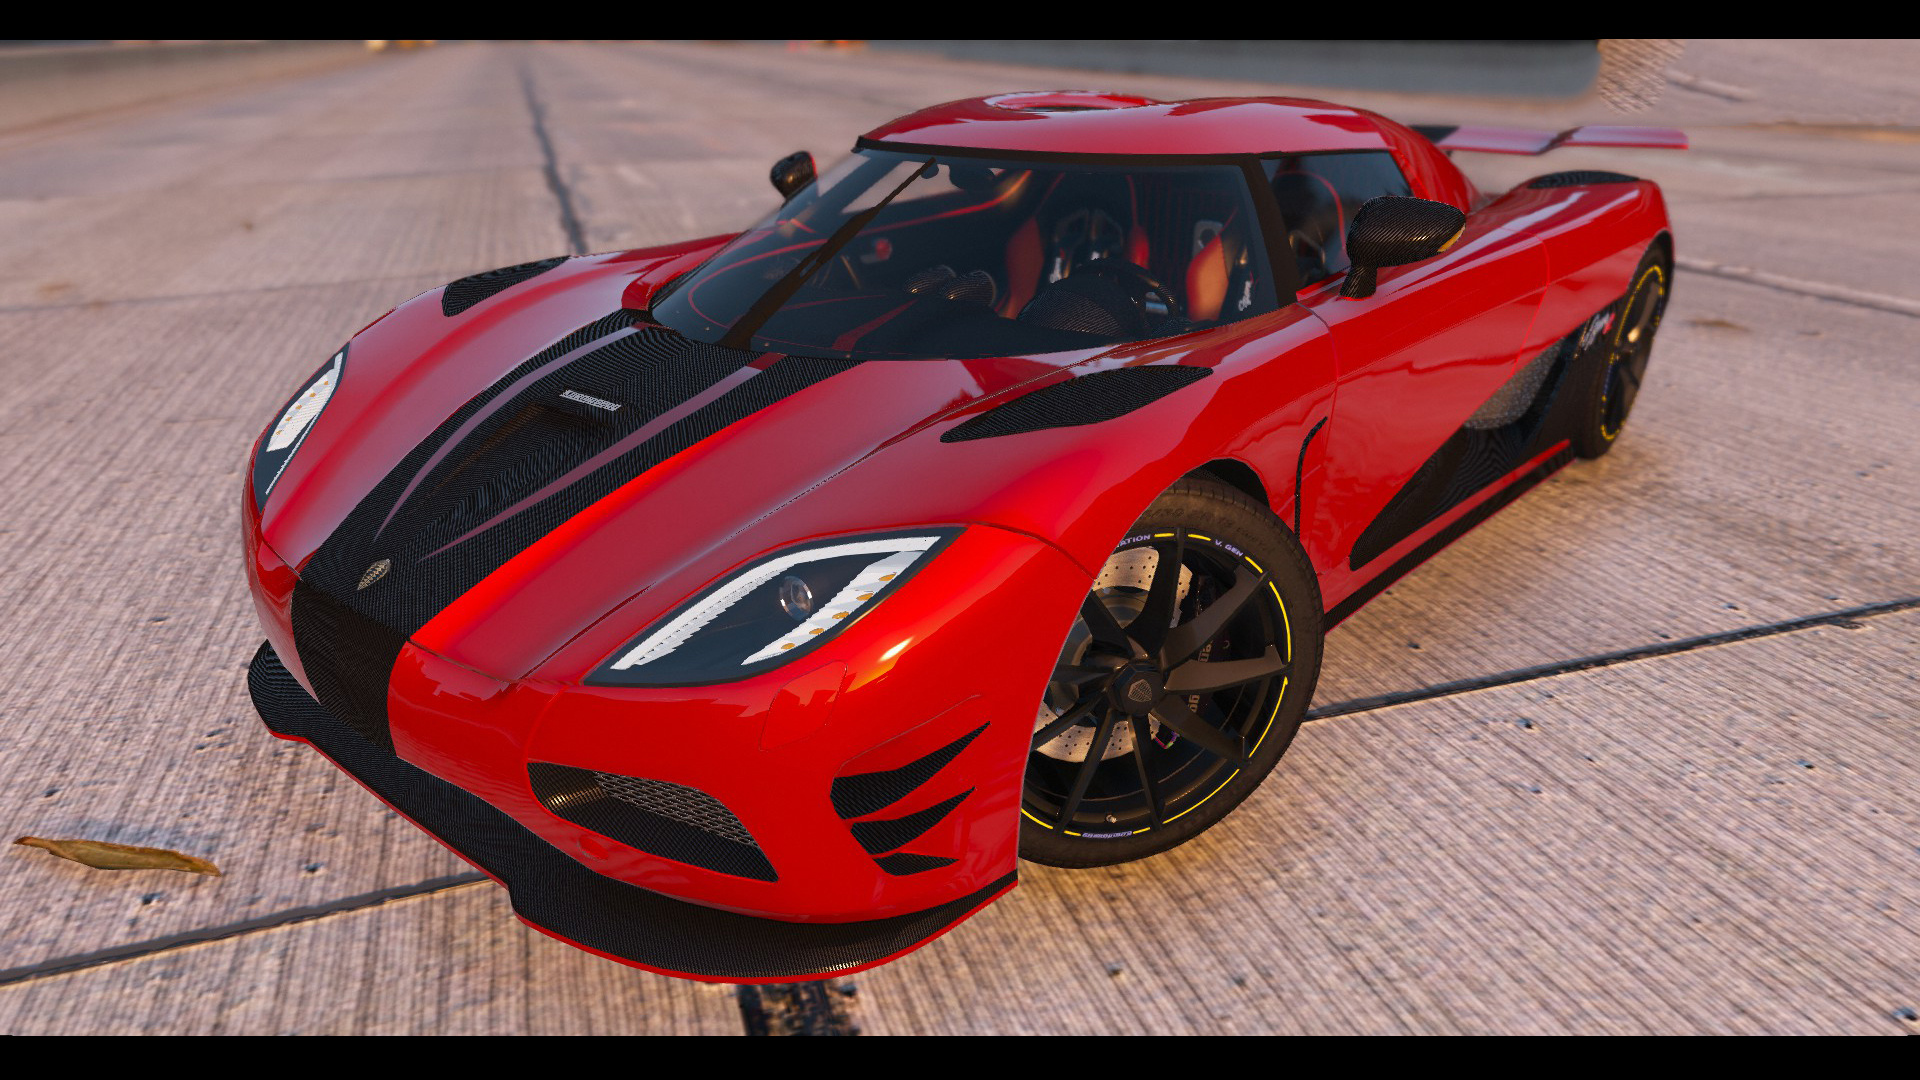 koenigsegg agera r grid 2 with 2014 Koenigsegg Agera R Hq Digitaldials One 1 Tuning Set on Rpg Maker Mv Dlc Import additionally Razendsnel Gamen Met De Koenigsegg Razer Blade Laptop as well Koenigsegg Agera R Wallpaper 1080p in addition Vehicle likewise Koenigsegg Agera R Wallpaper 1080p.